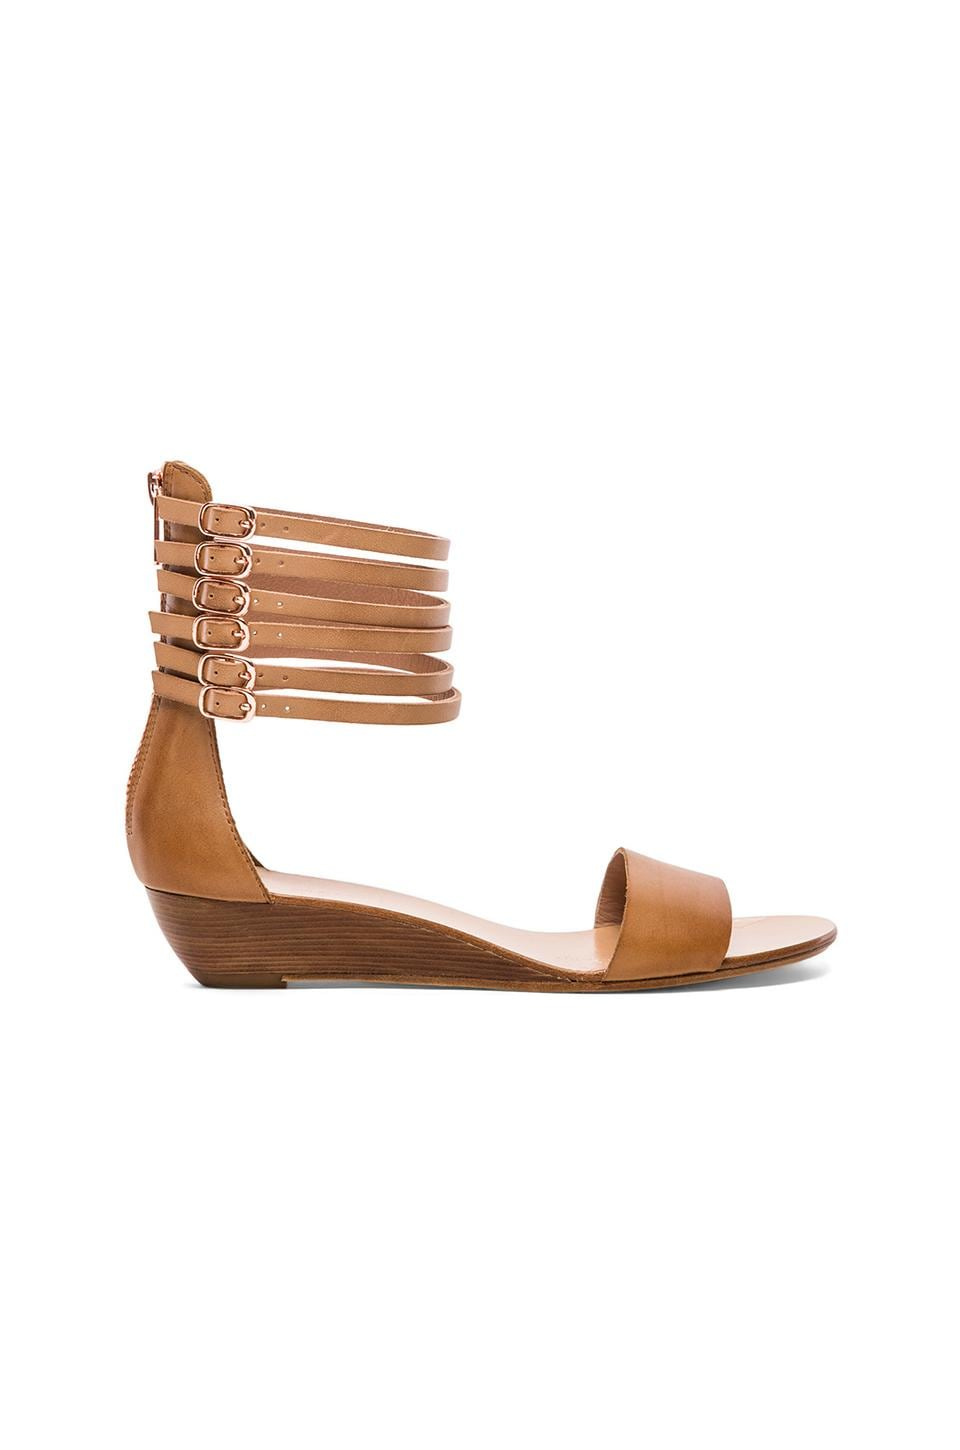 Ella Moss Harleigh Flat Sandals in Light Tan